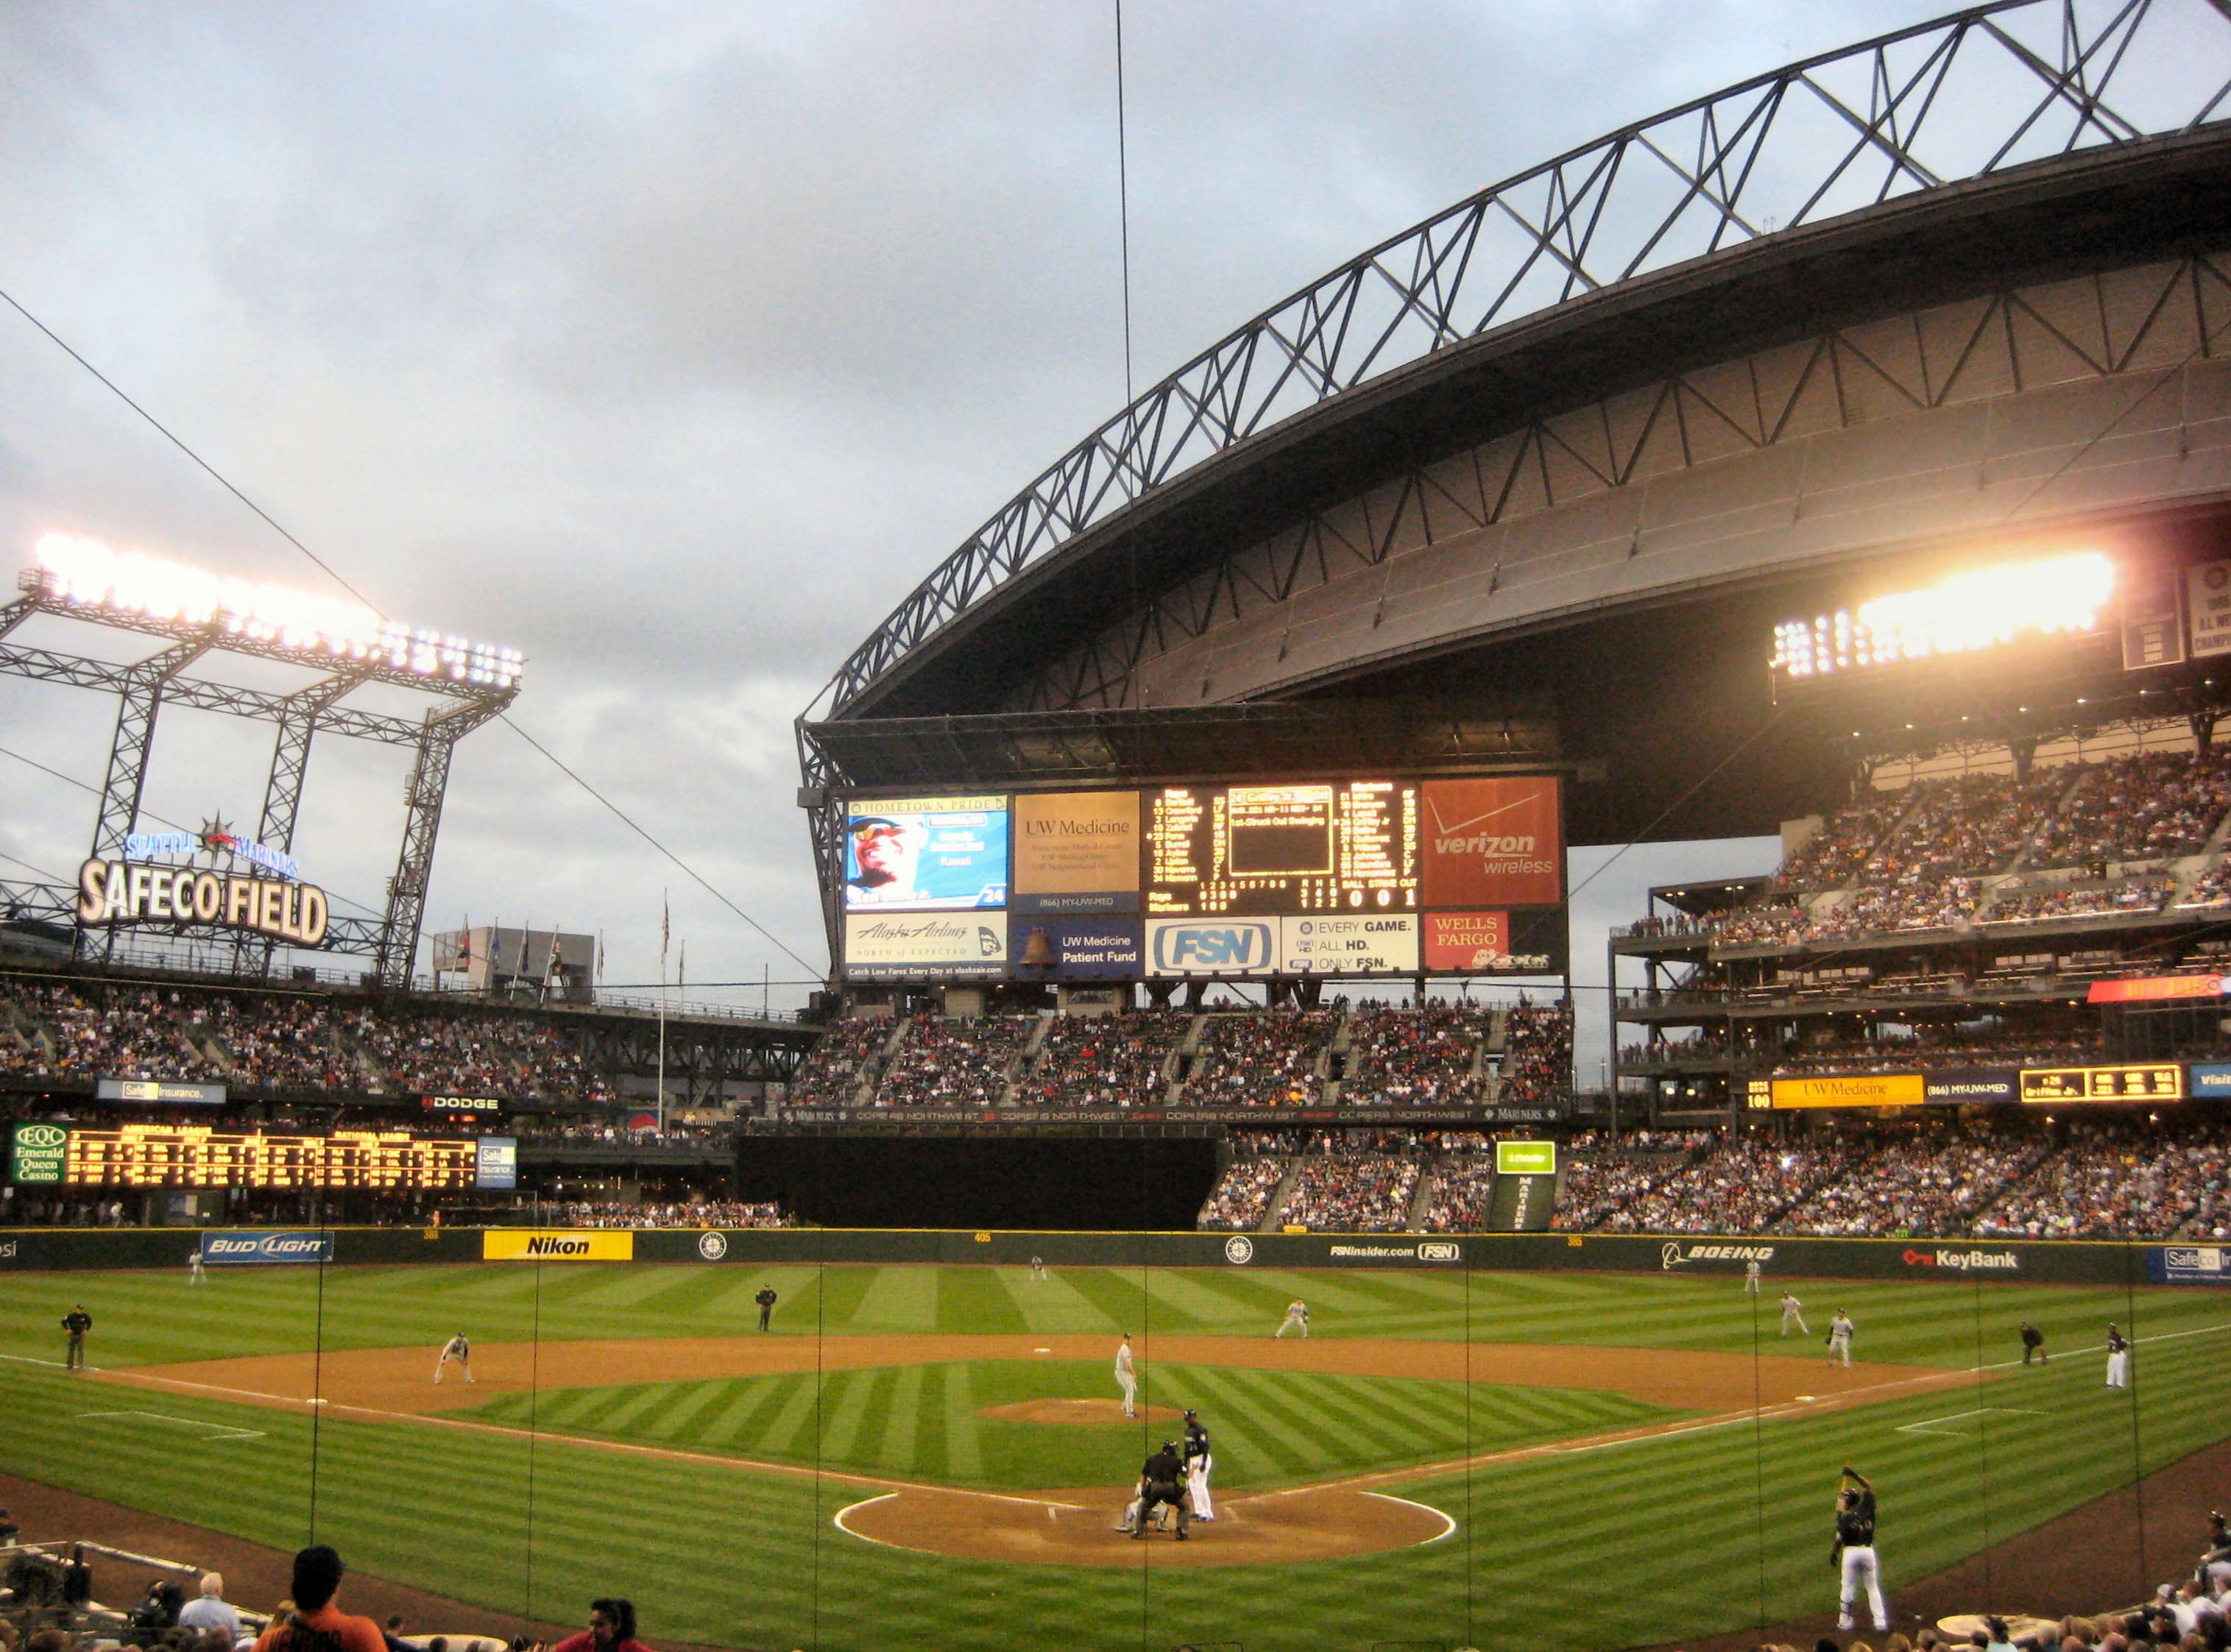 File:Safeco Field. Against Tampa Bay Rays, with Ken ...